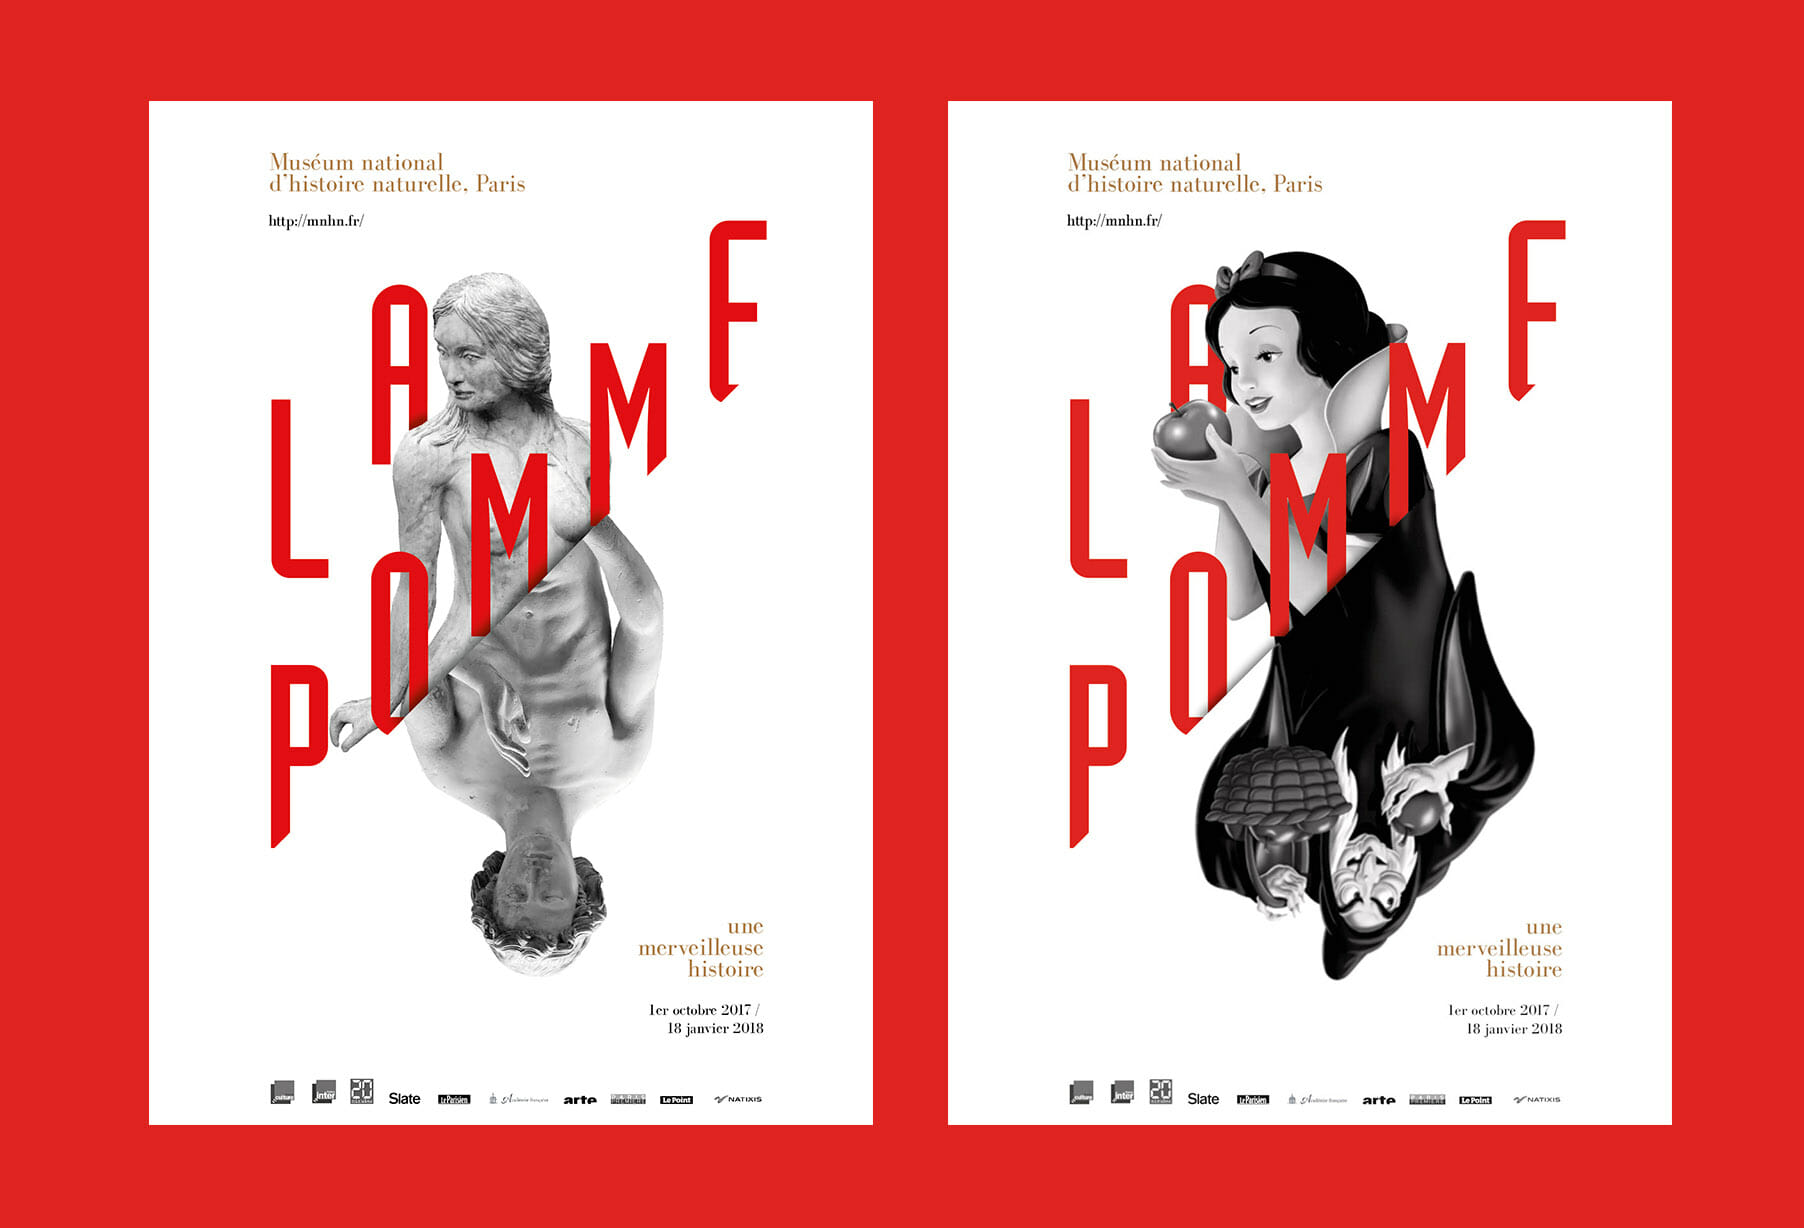 Branding for the exhibition of la pomme